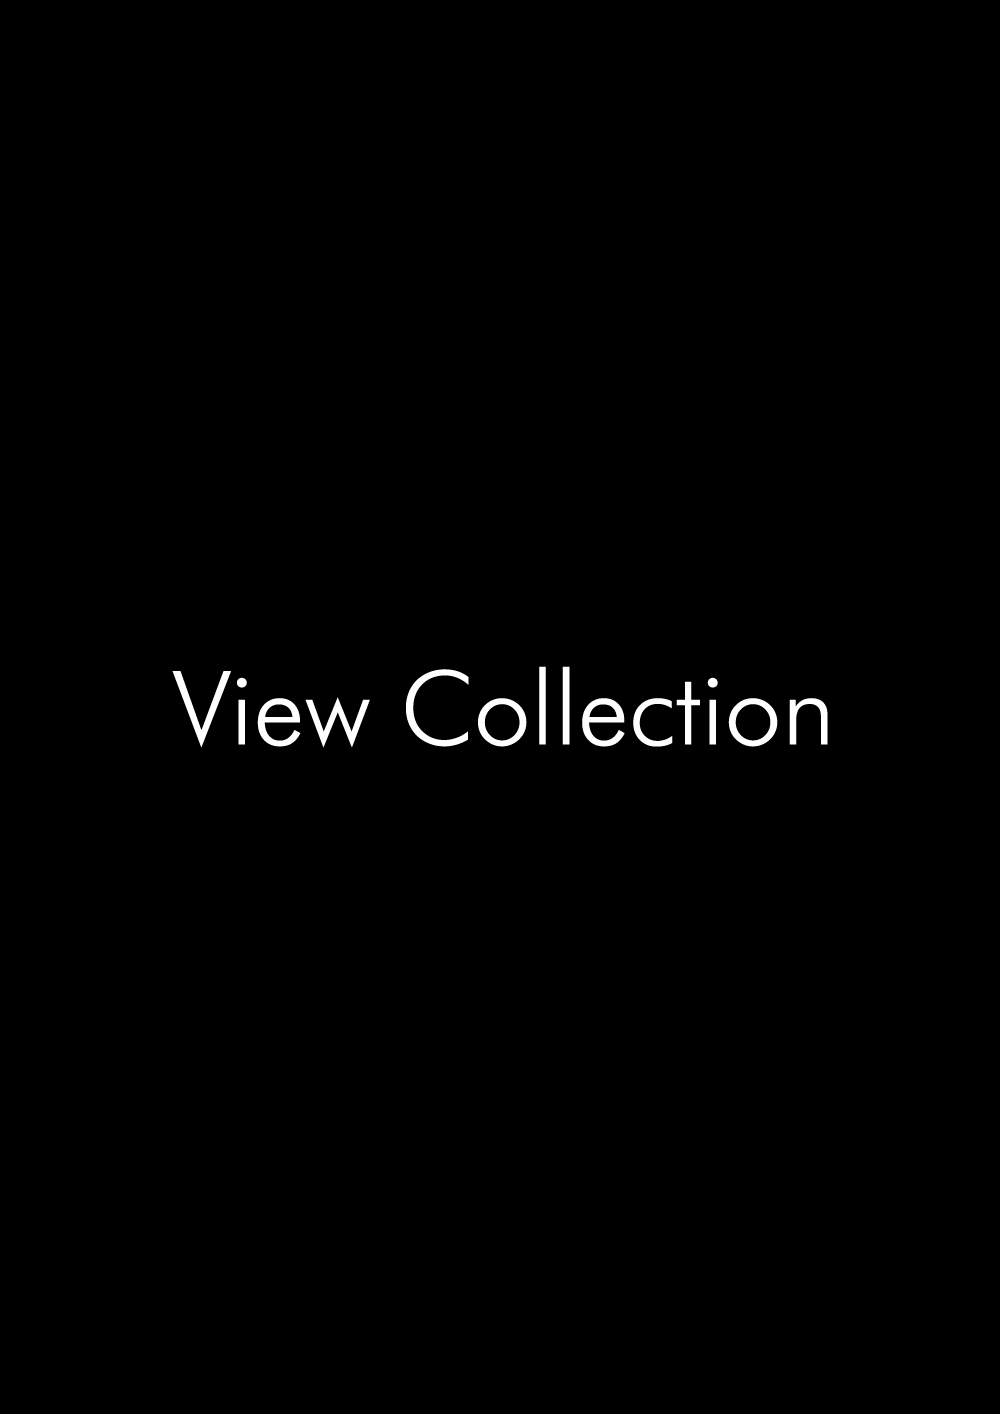 view collection - Gallery